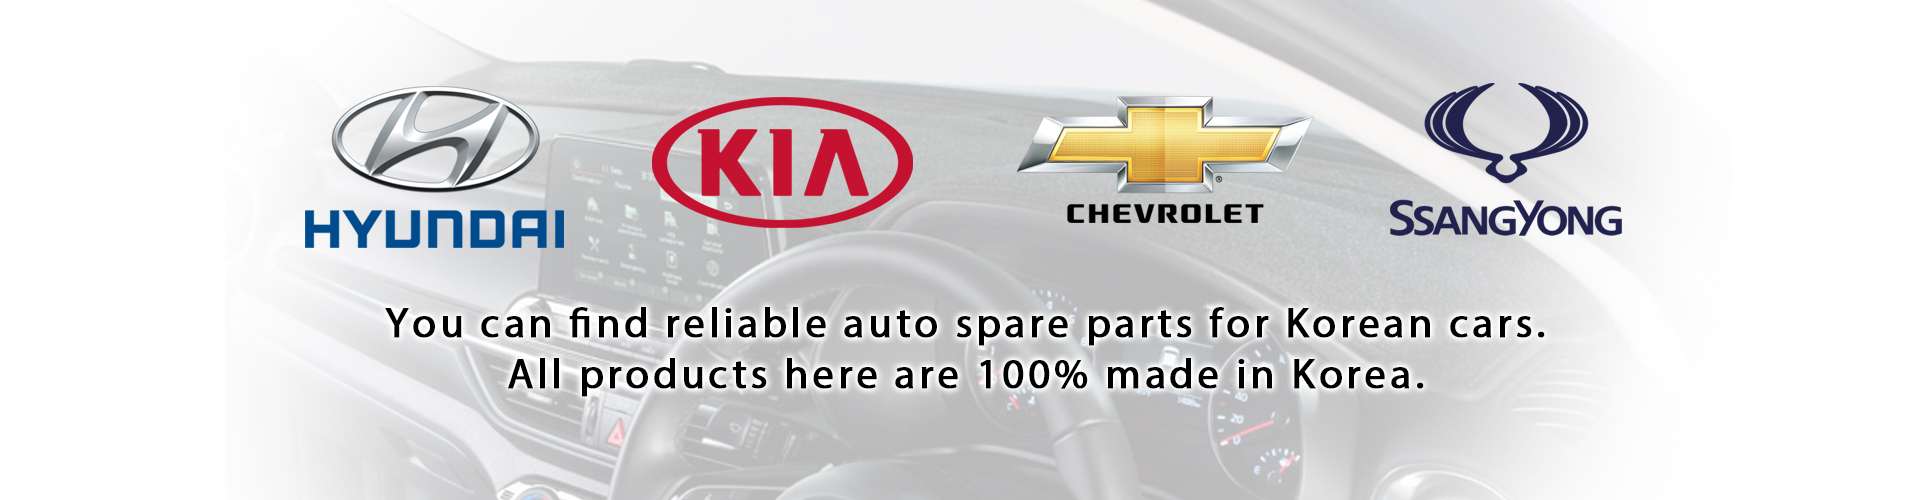 You can find reliable auto spare parts for Korean cars. All products here are 100% made in Korea.